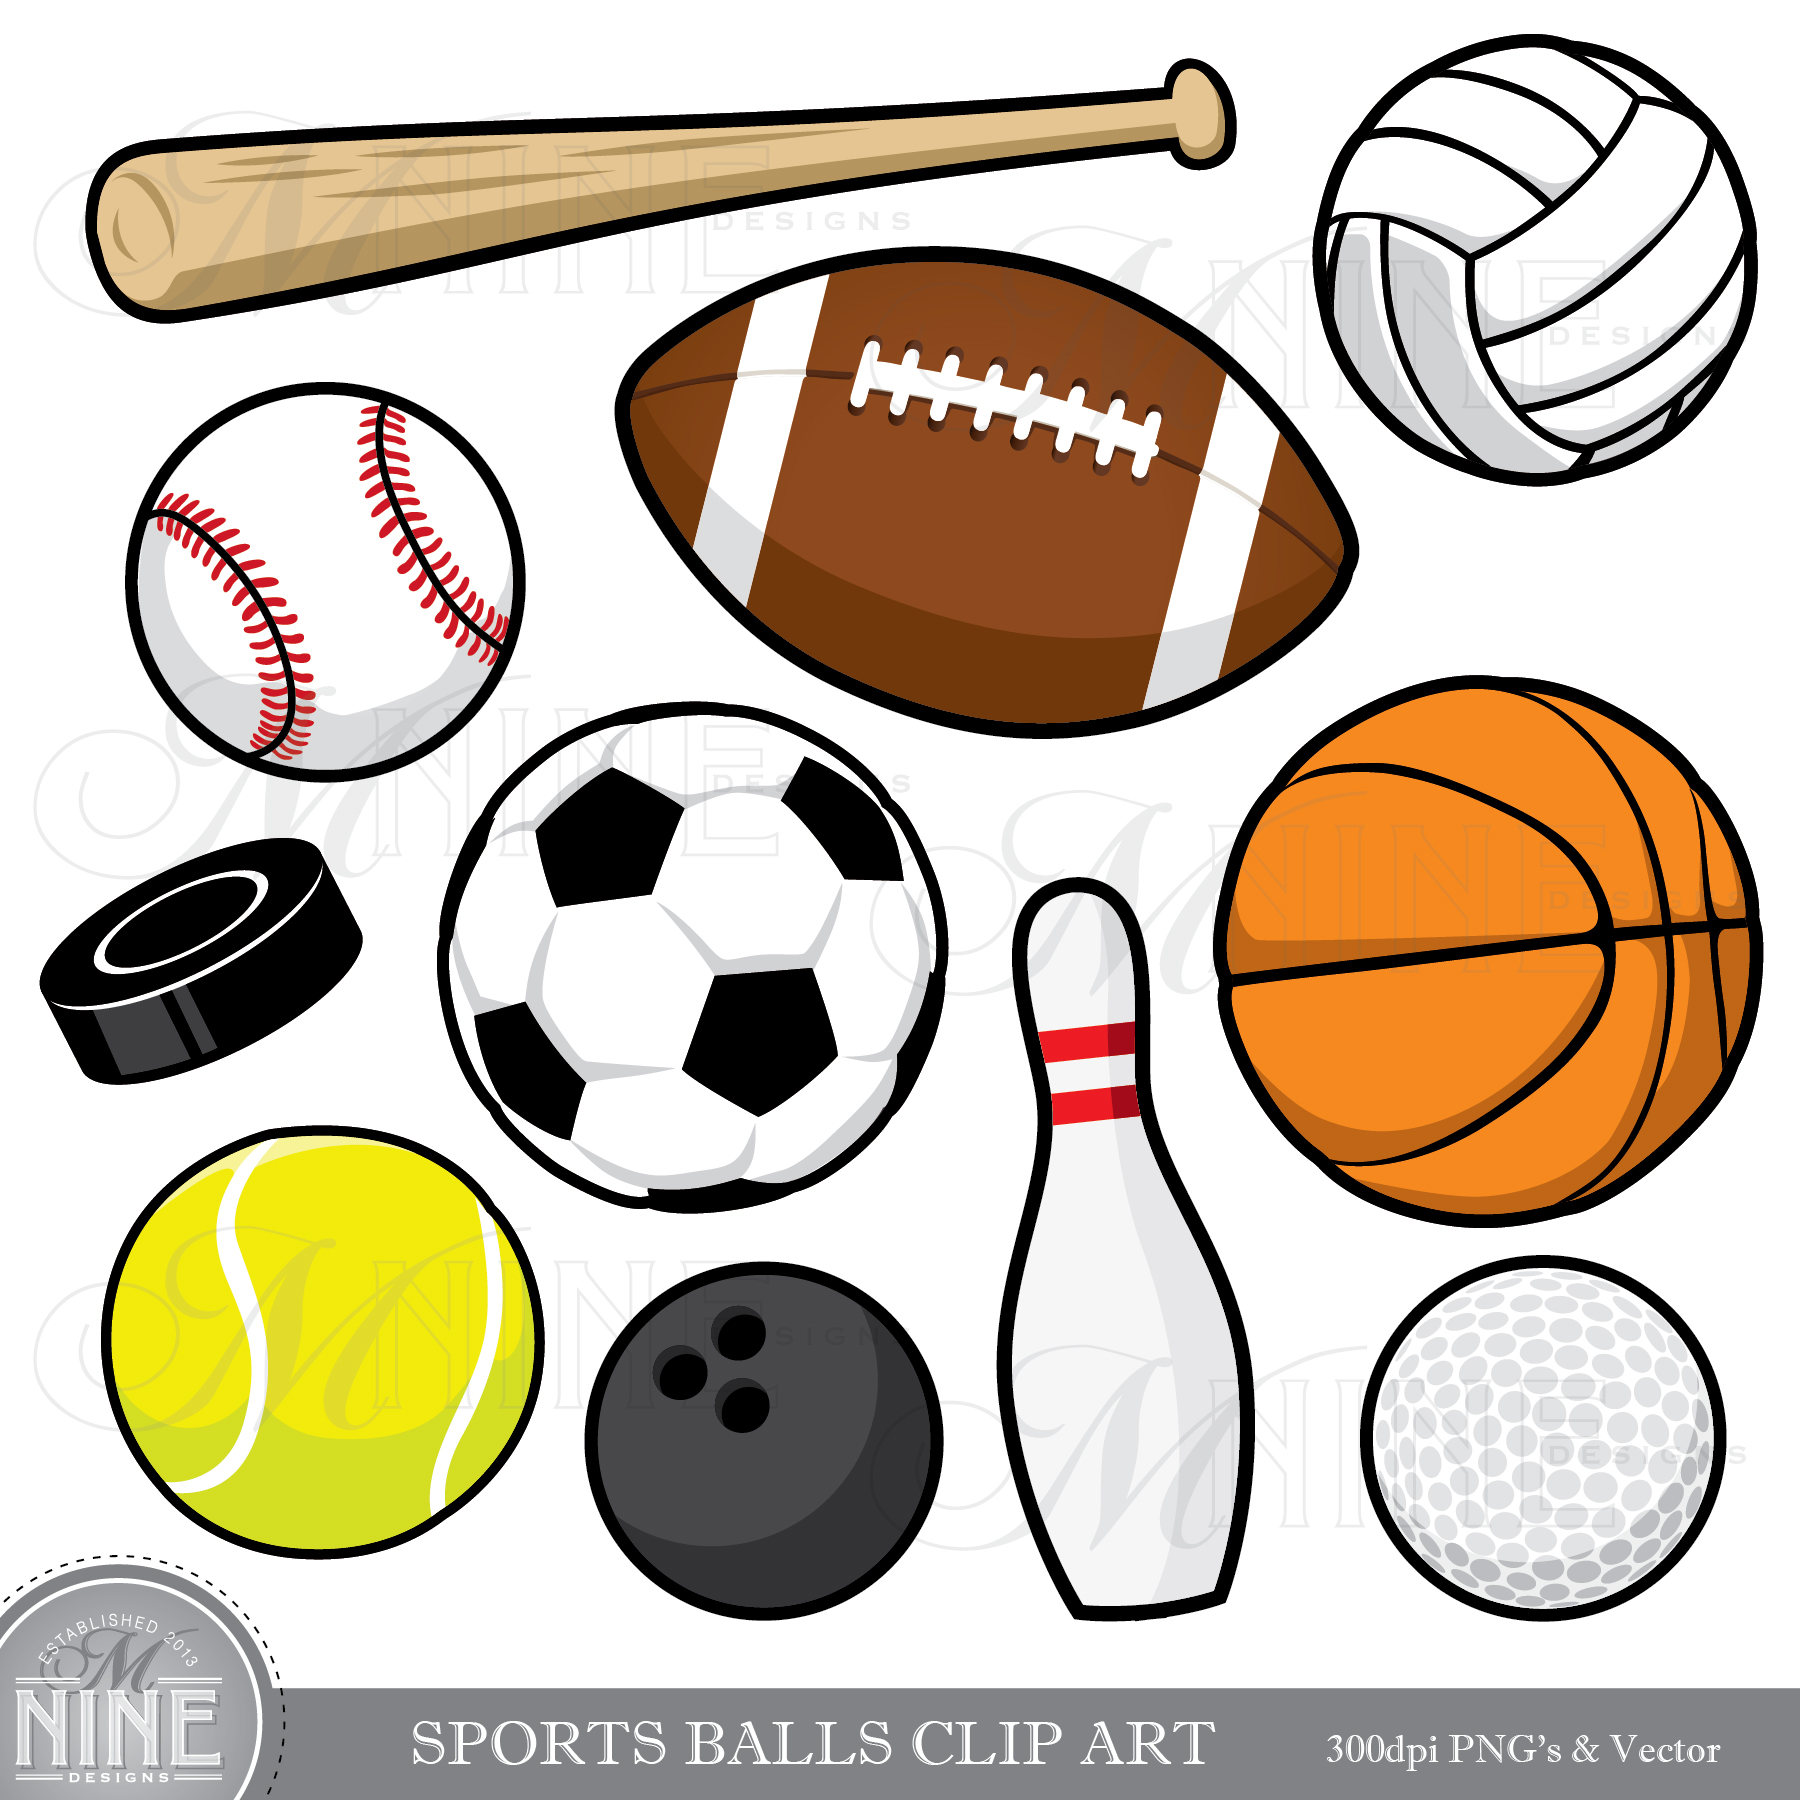 all sports balls clipart alternative clipart design u2022 rh extravector today sports balls clipart free pictures of sports balls clipart